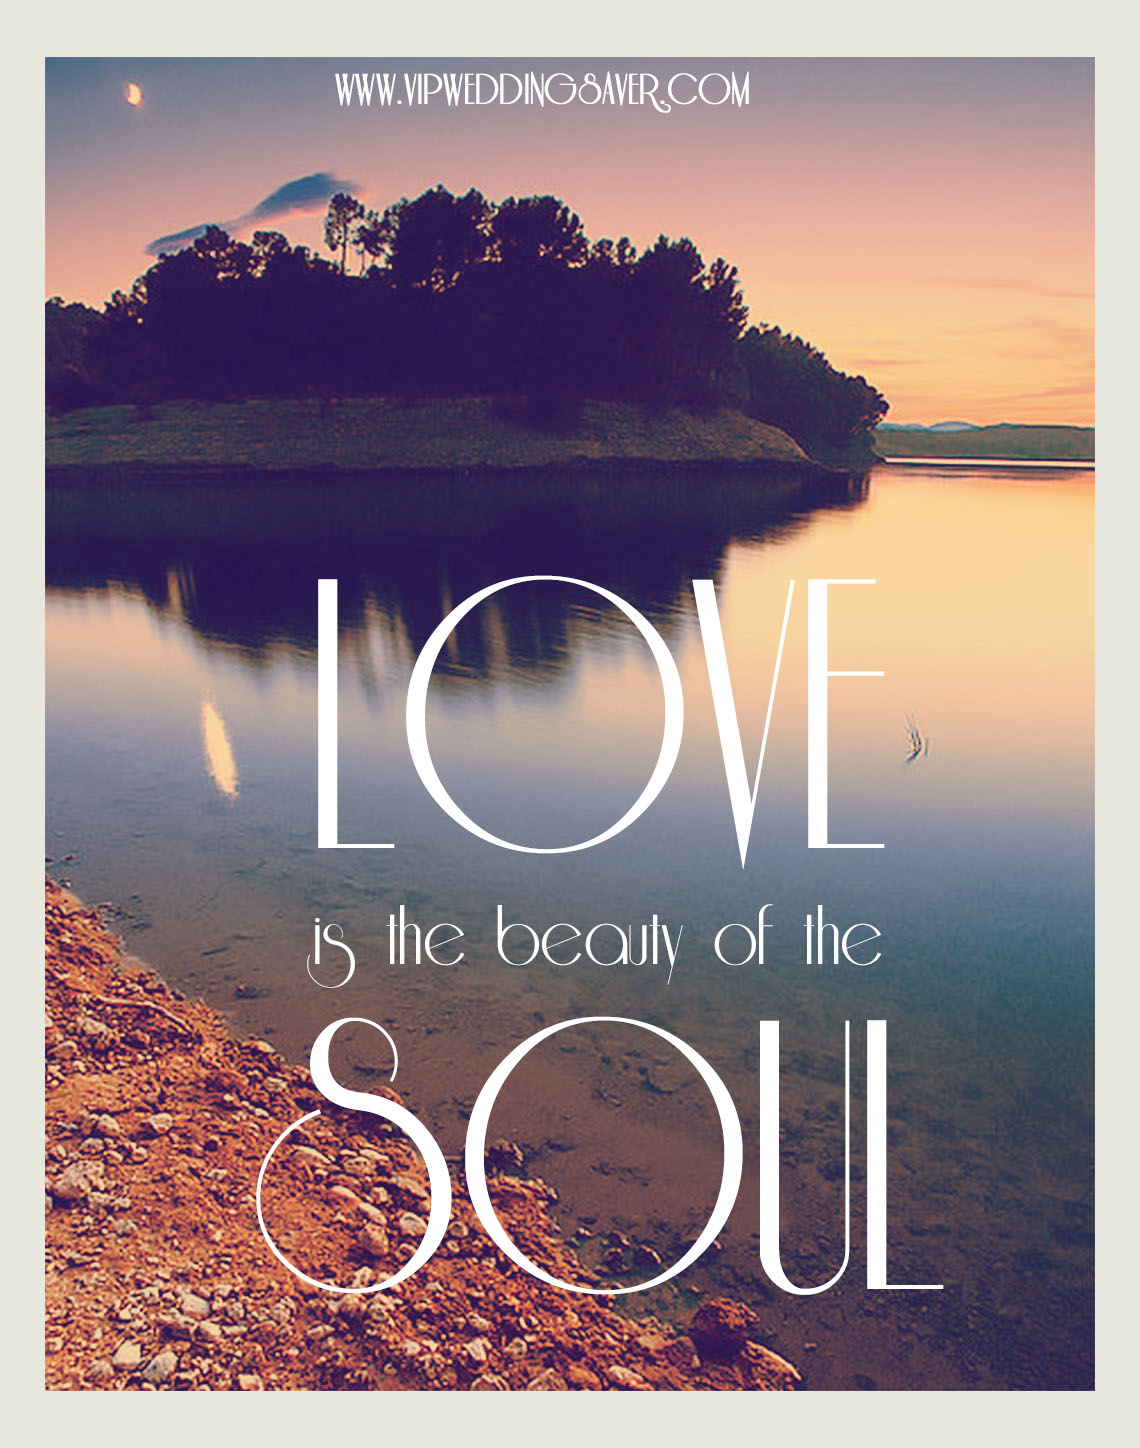 love and soul image